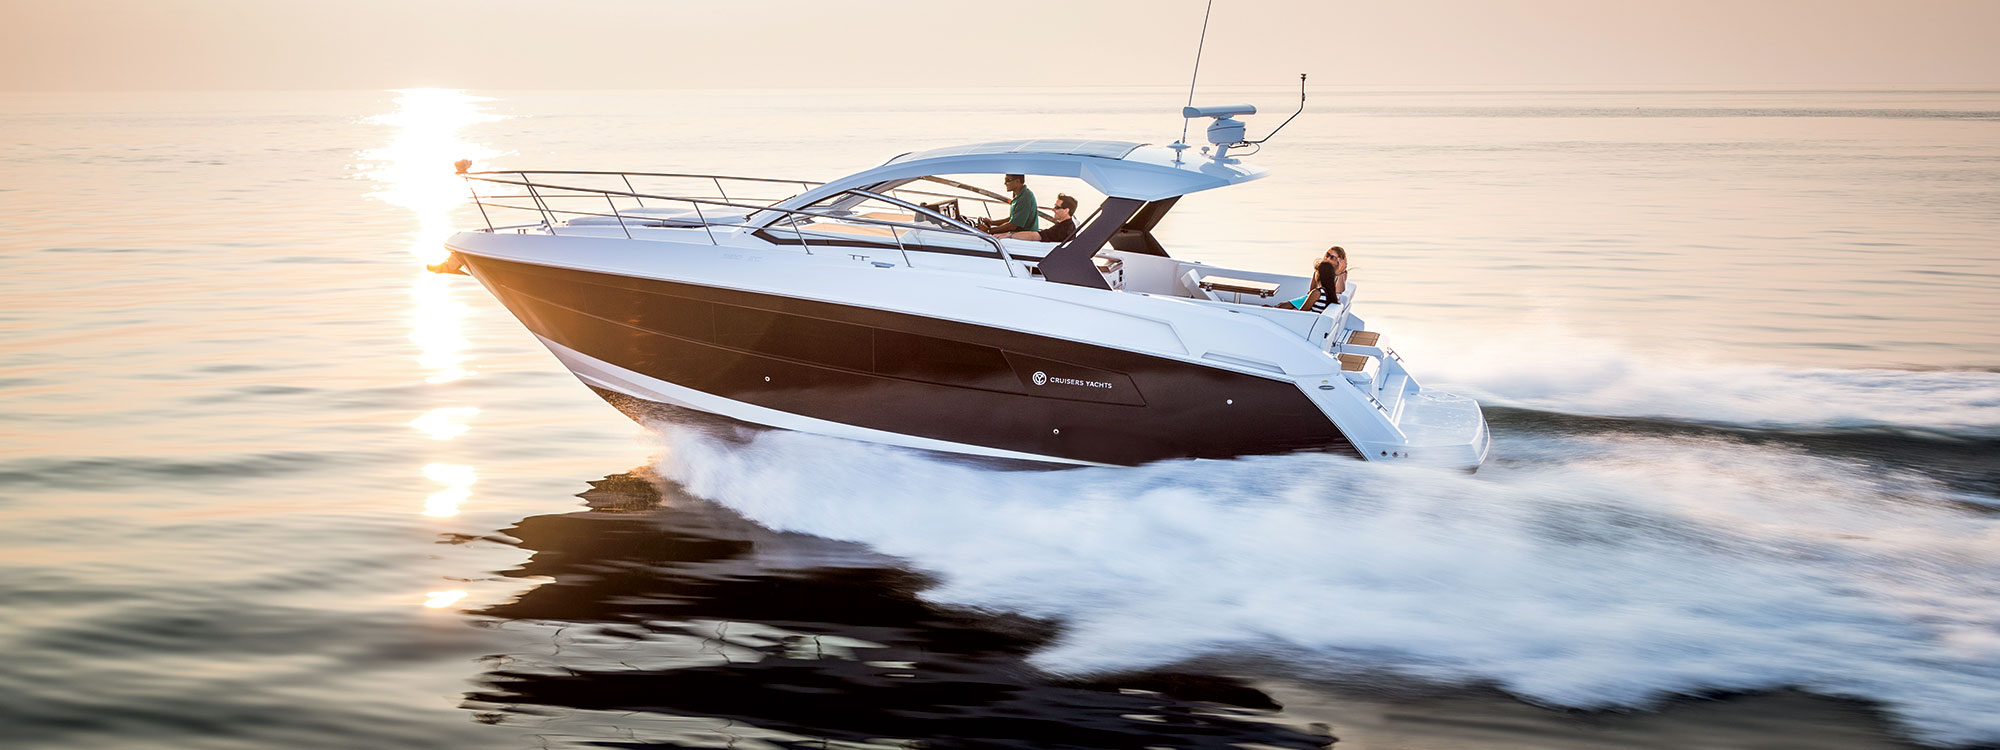 Cruisers Yachts 39 Express Coupe for sale in San Diego